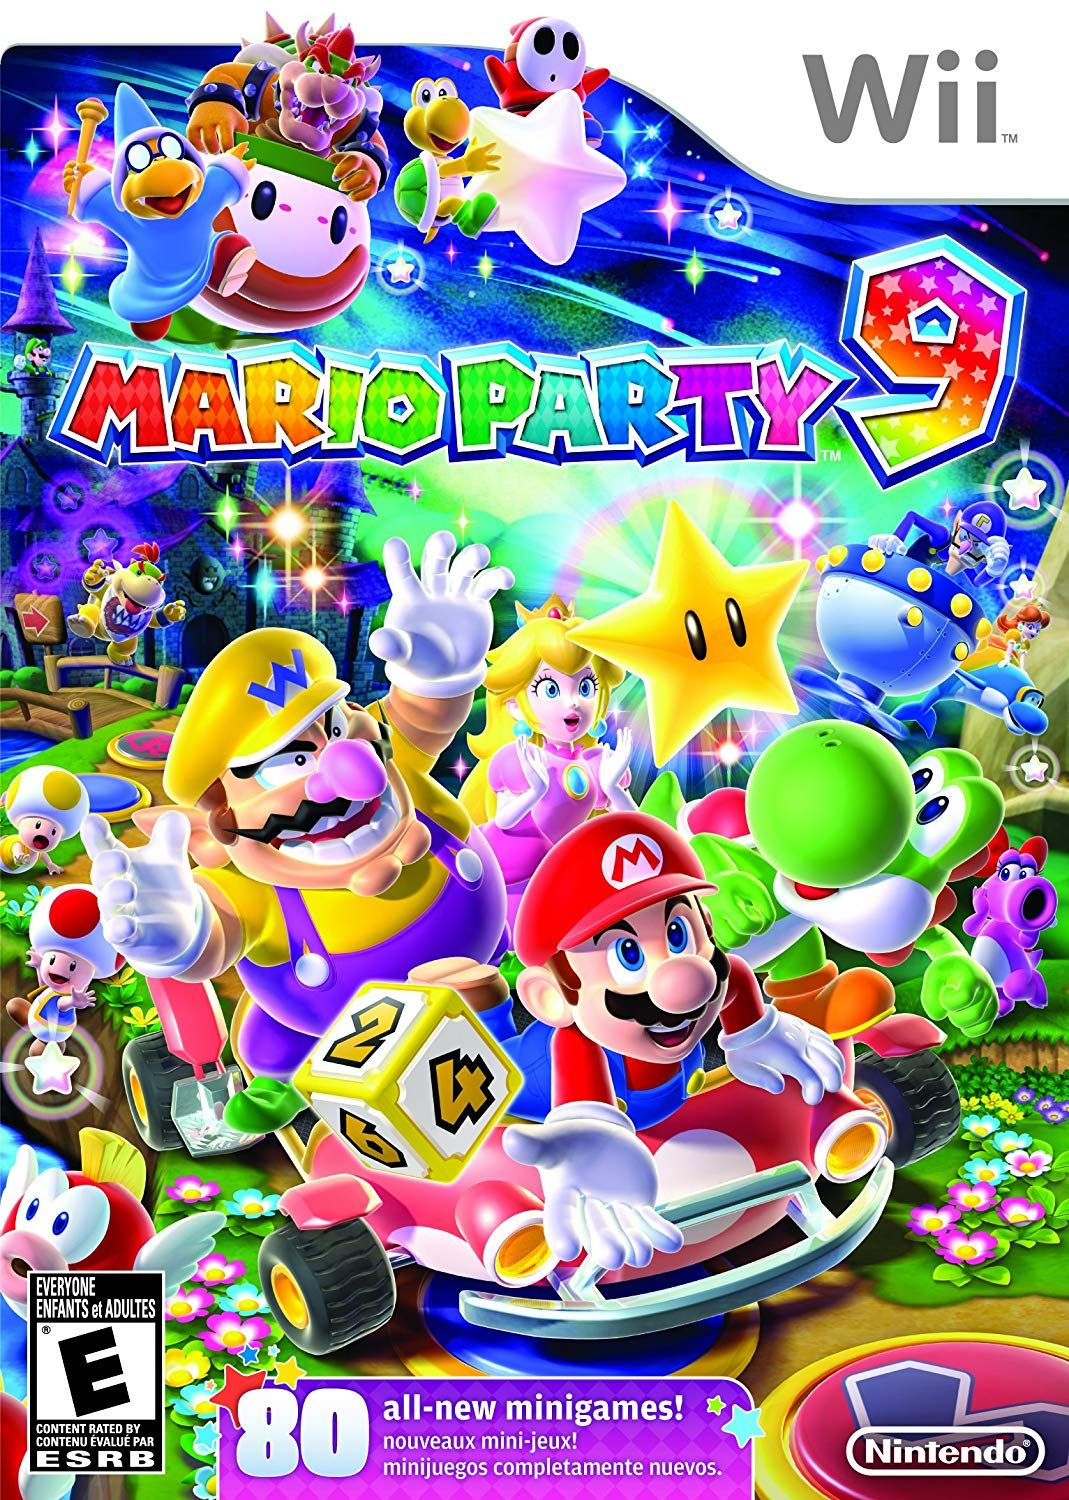 Mario Party 9 Nintendo Wii Video Games Mario Party 9 Mario Party Wii Games